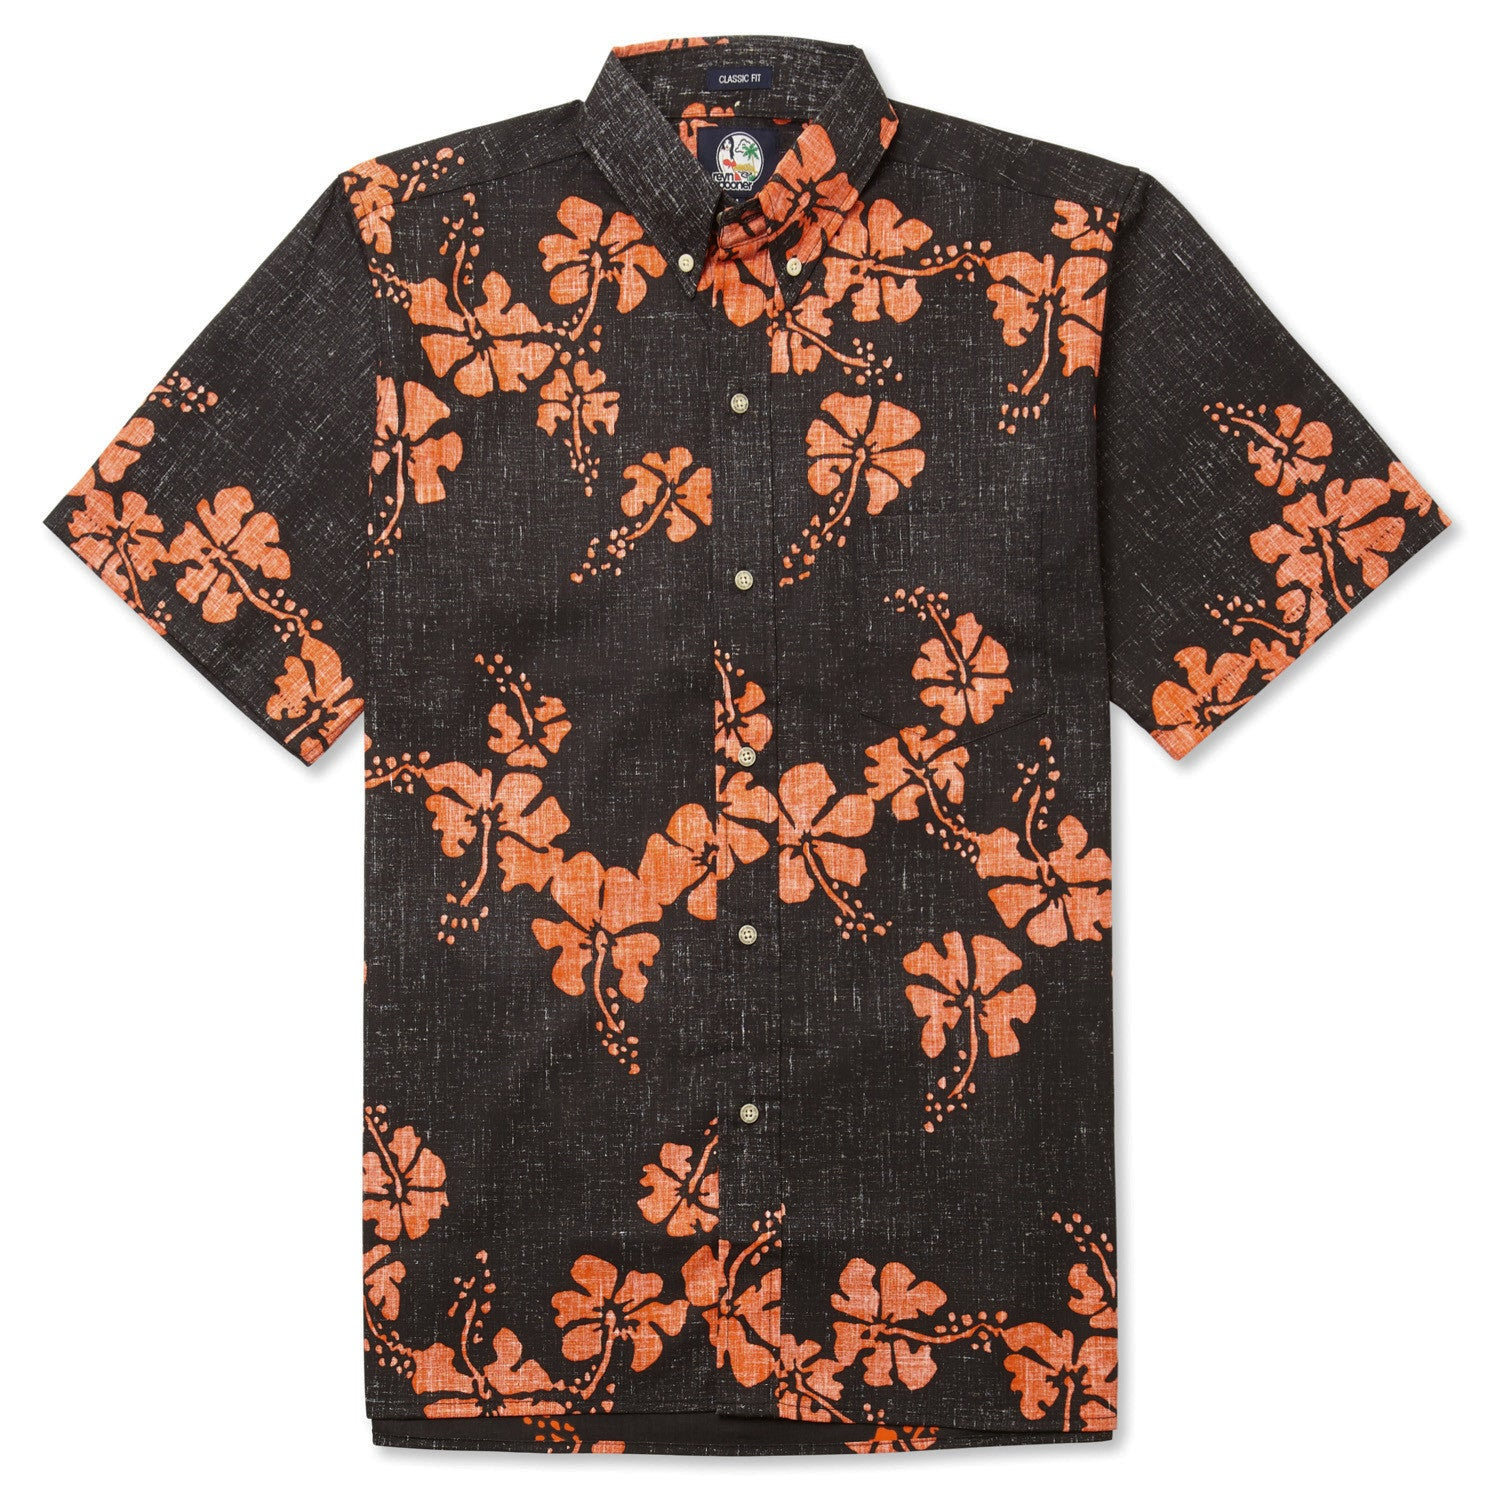 50Th State Flower / Classic Fit Button Front Shirt, Cotton/Polyester, For Men, 2XL, Black, From Reyn Spooner